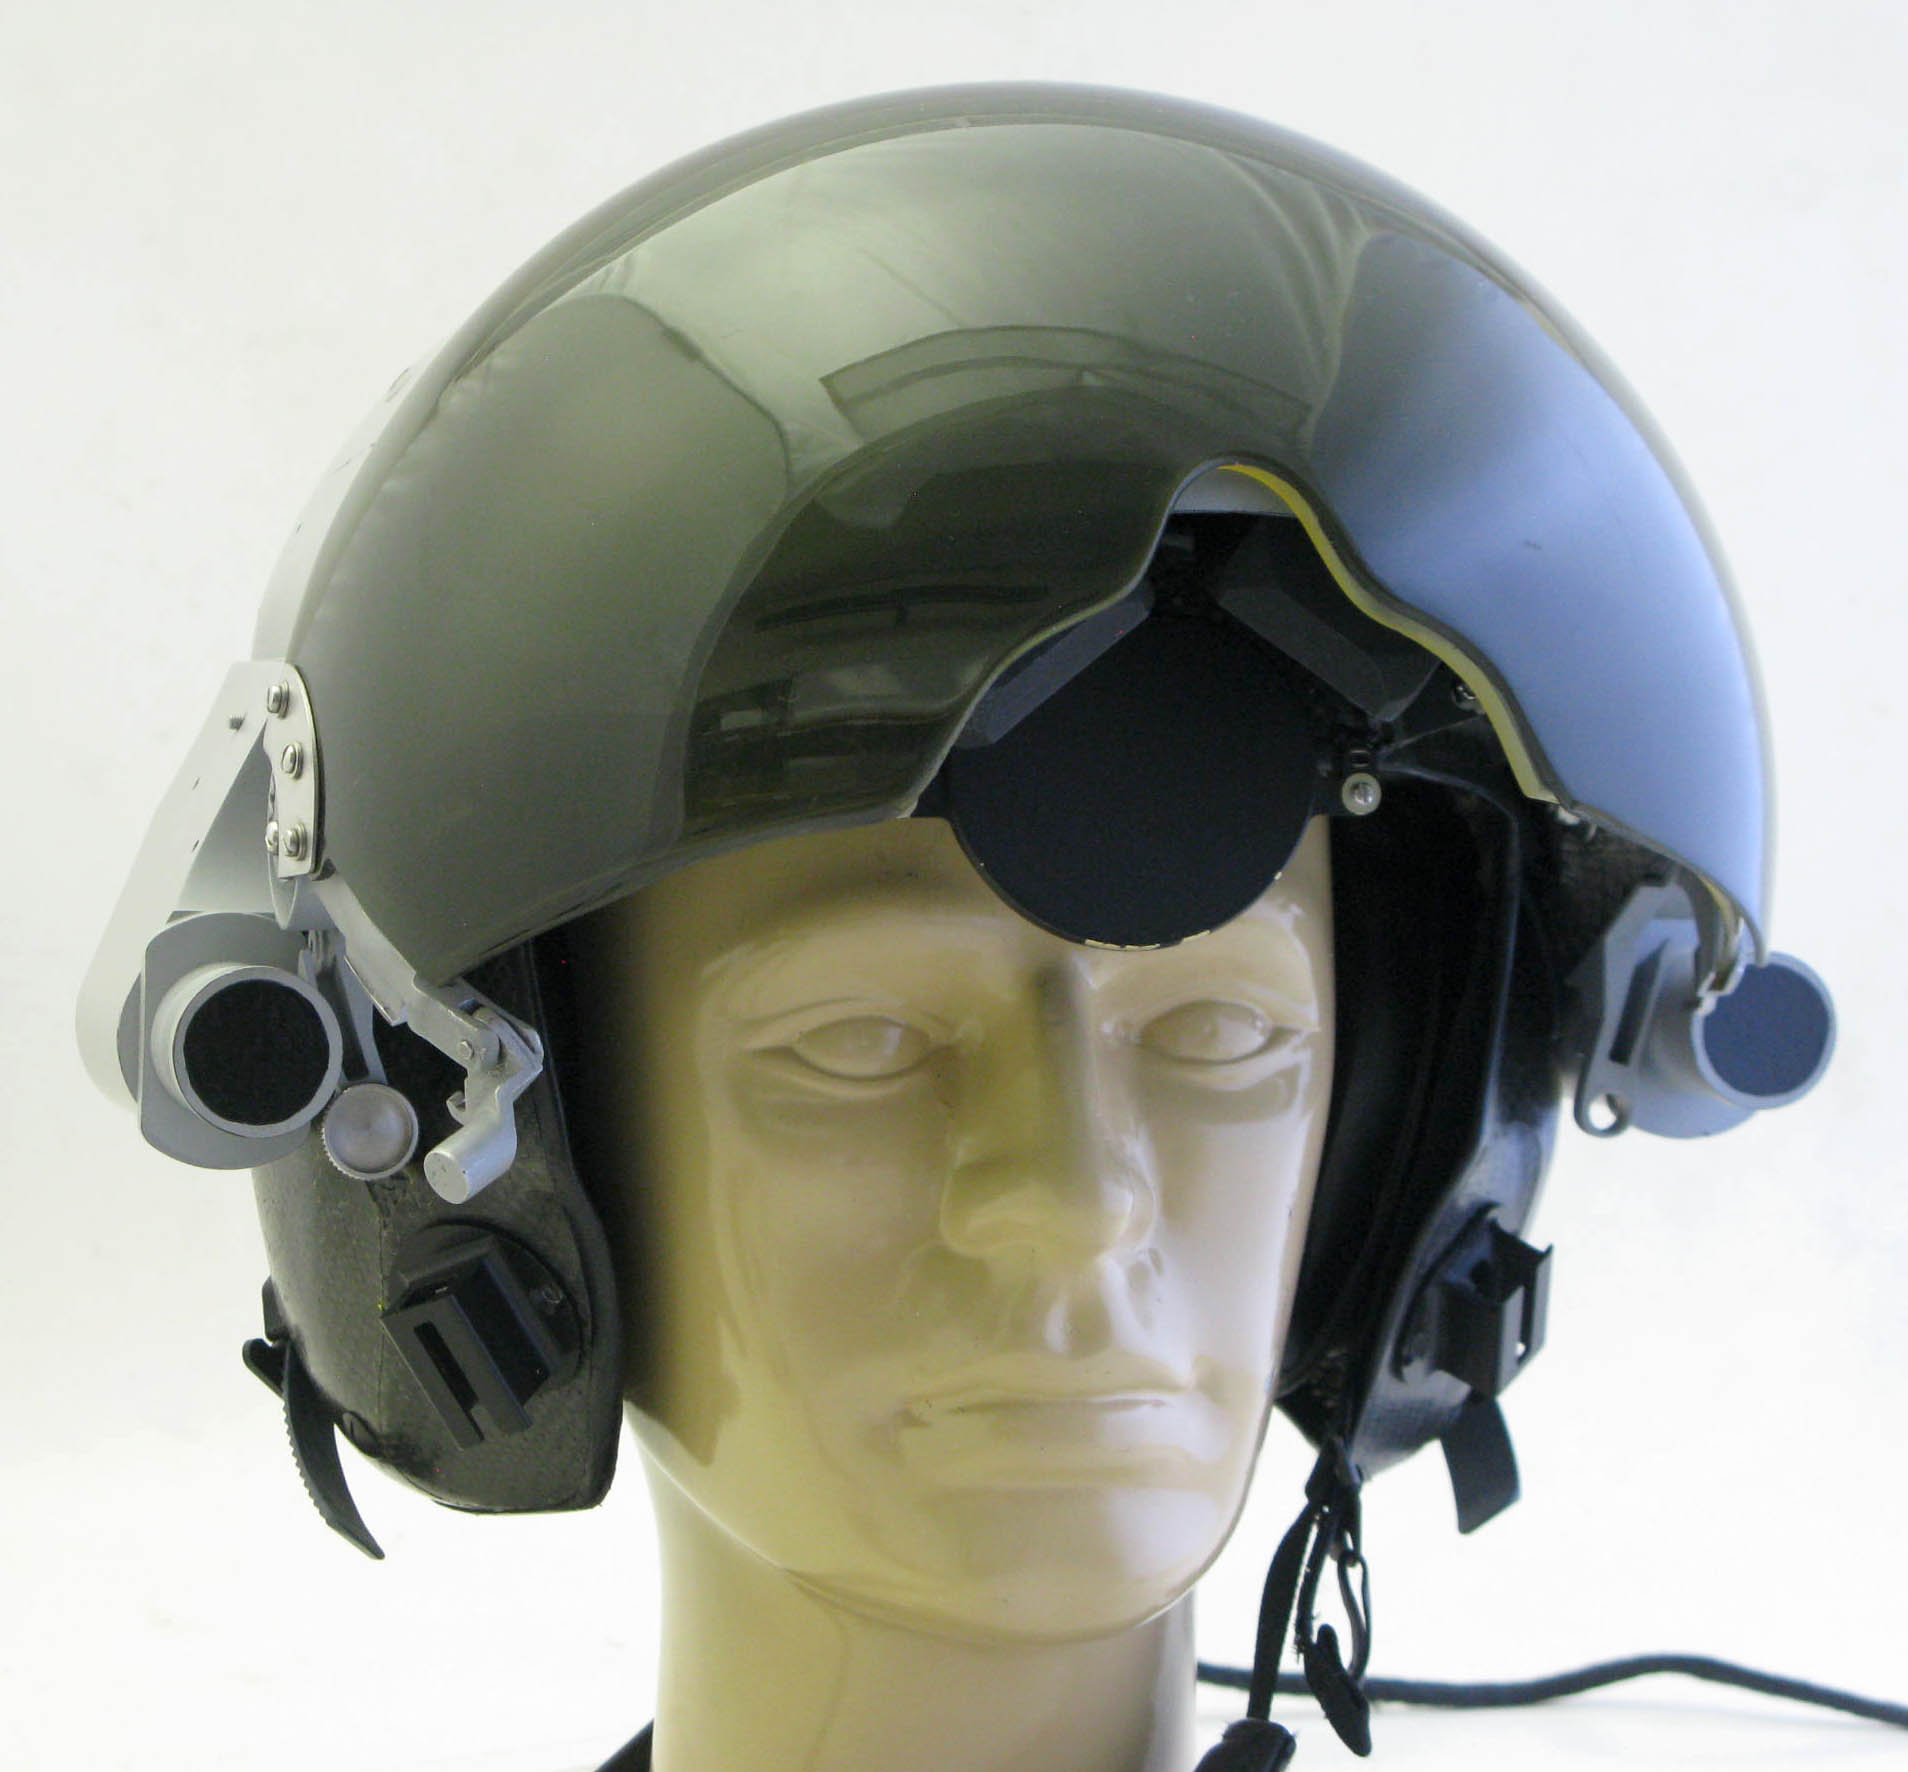 EFA HMD with Optical Tracker (space model)